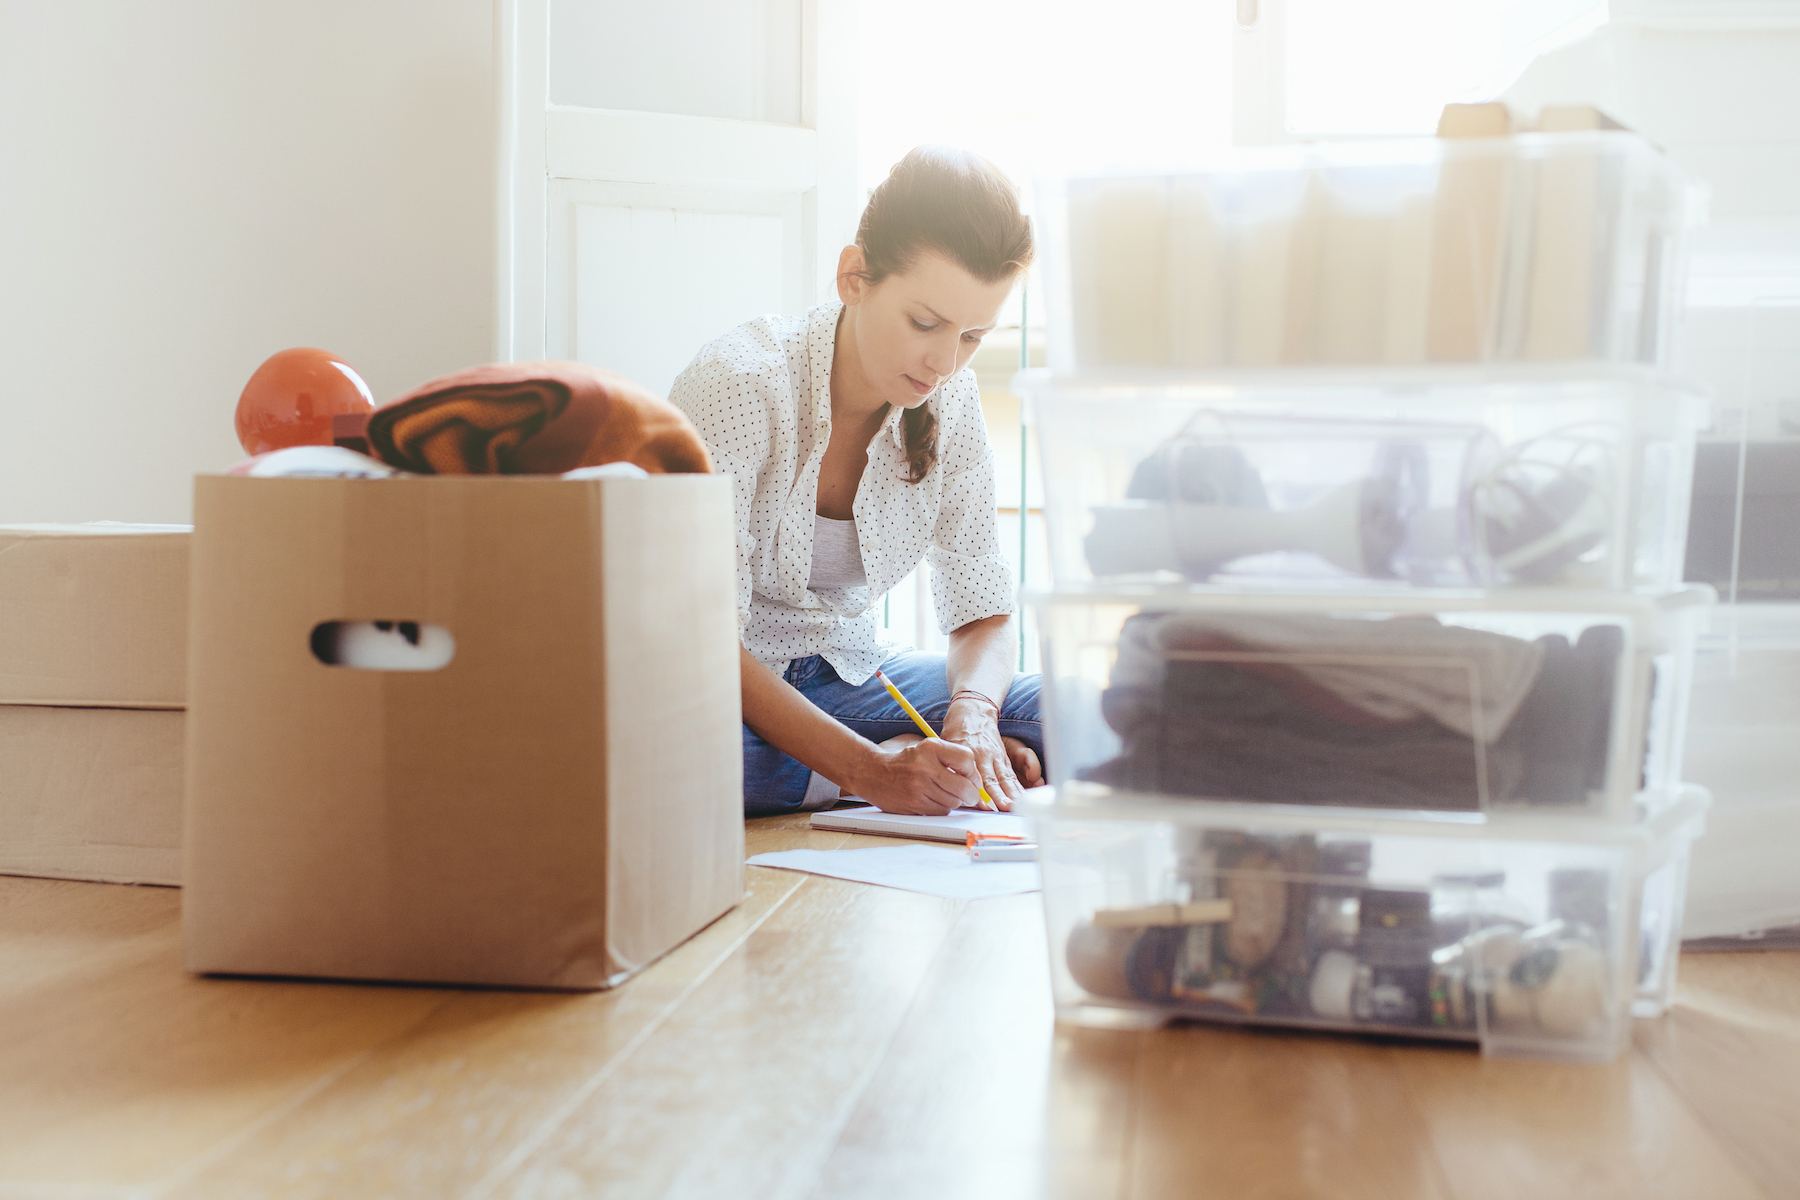 Emotionally Difficult Clutter, woman packing up belongings